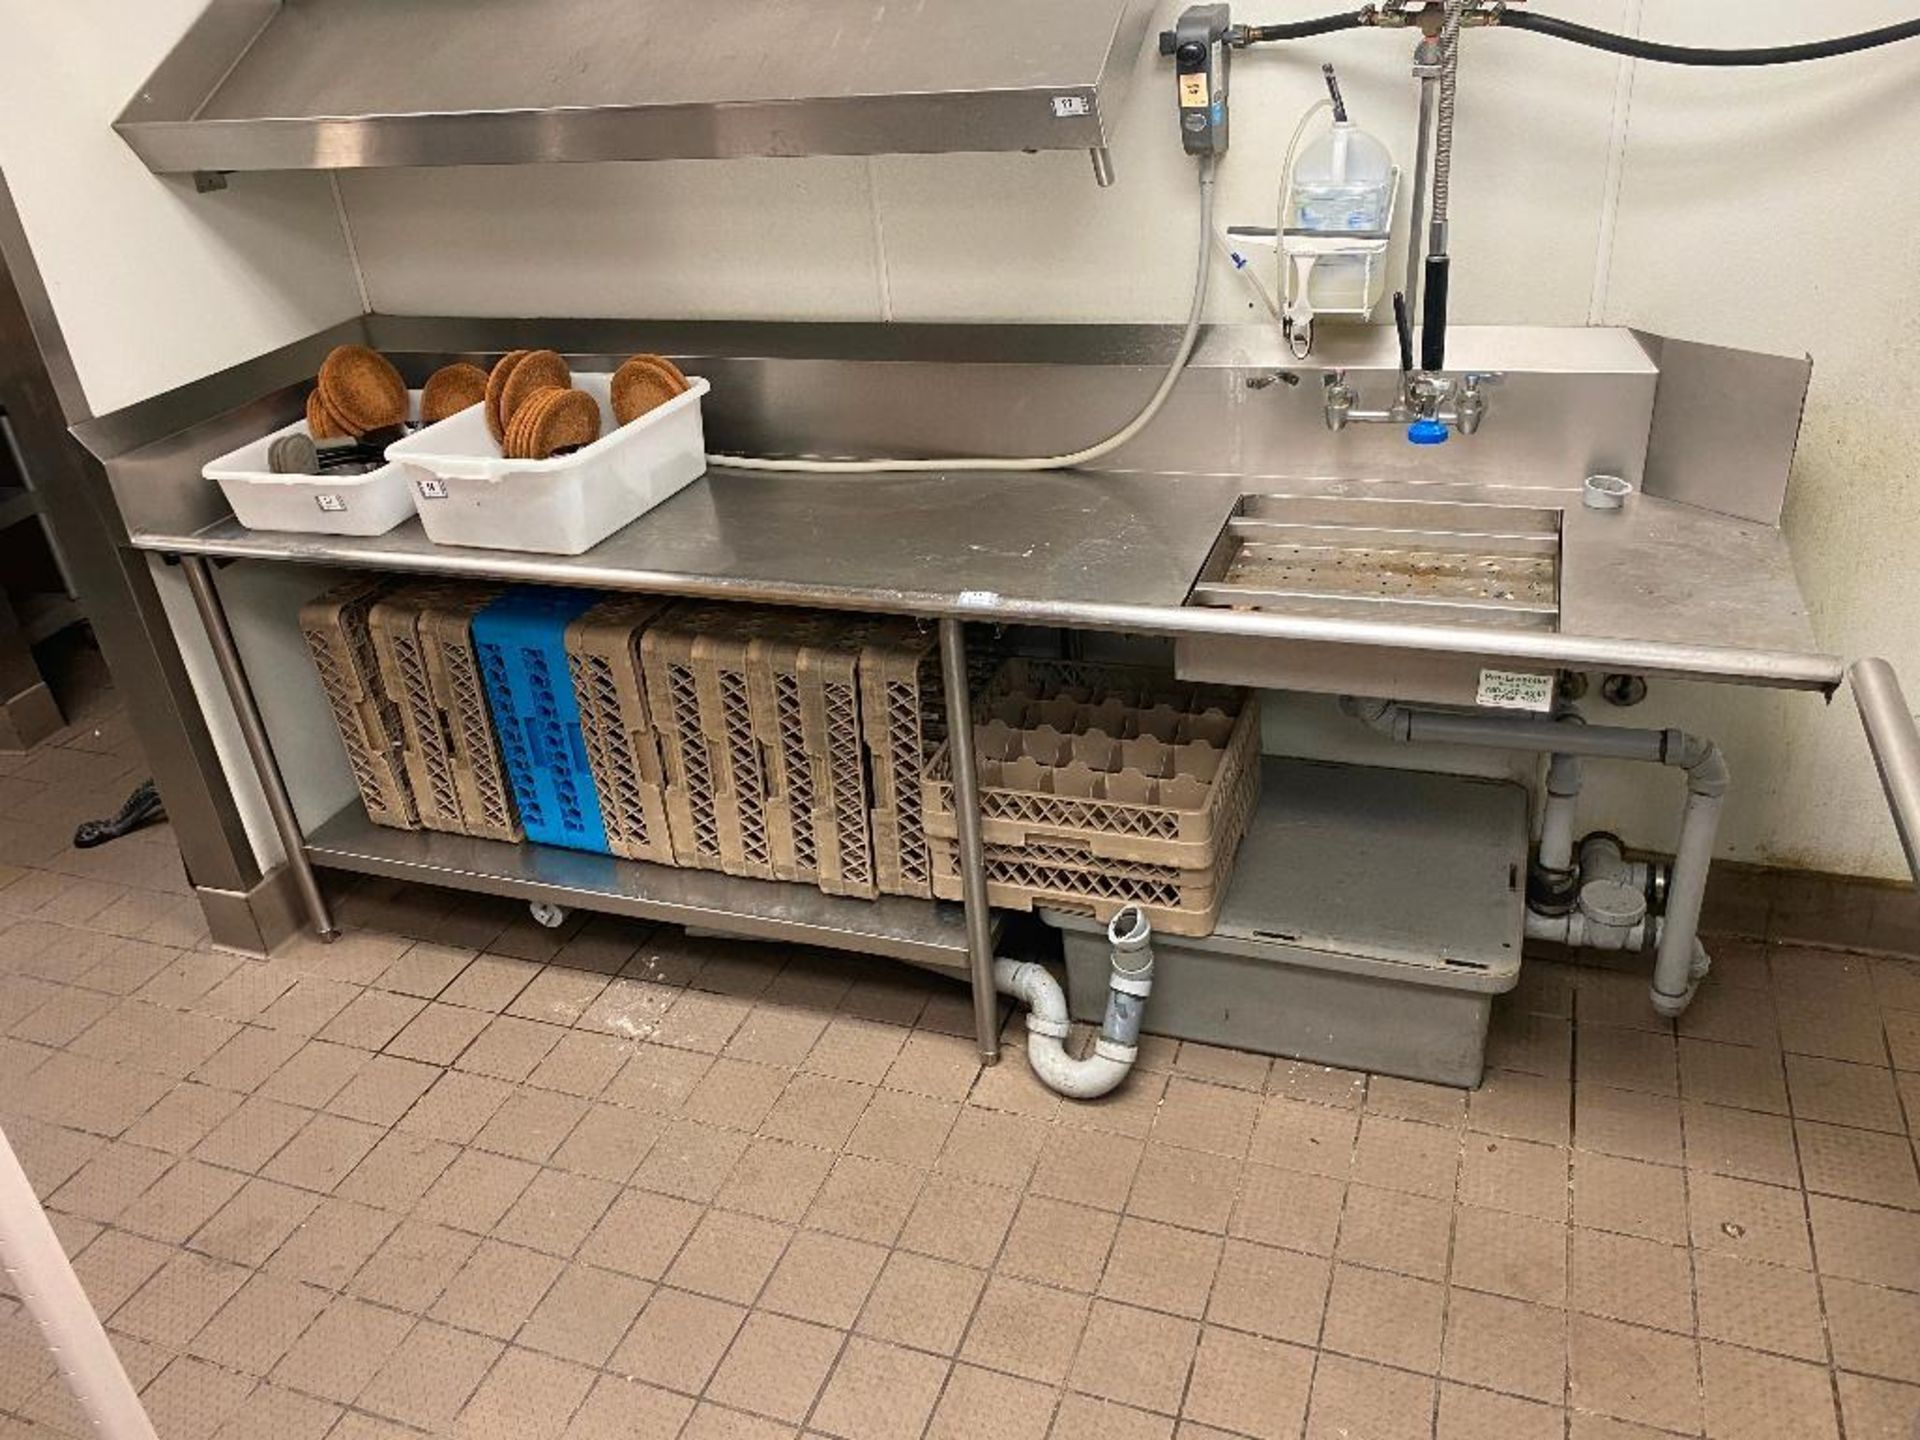 """105"""" STAINLESS STEEL DRAINBOARD/ SINK WITH PRE-RINSE & GREASE TRAP - NOTE: REQUIRES DISCONNECT, PLEA - Image 2 of 4"""